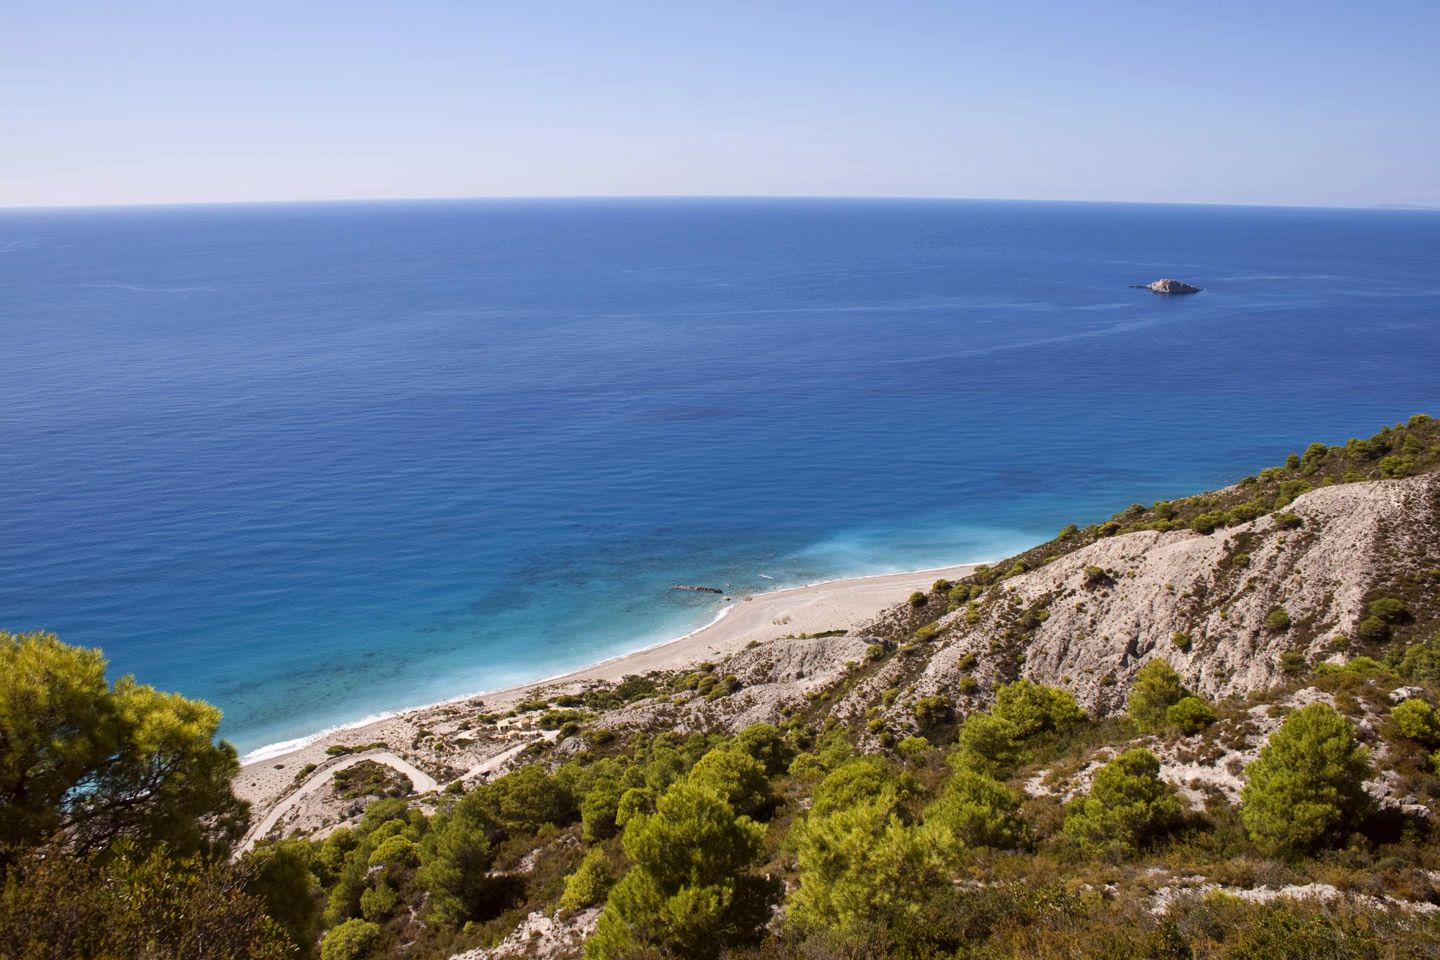 Gialos beach in Lefkada: a big sandy beach | Lefkada Slow Guide